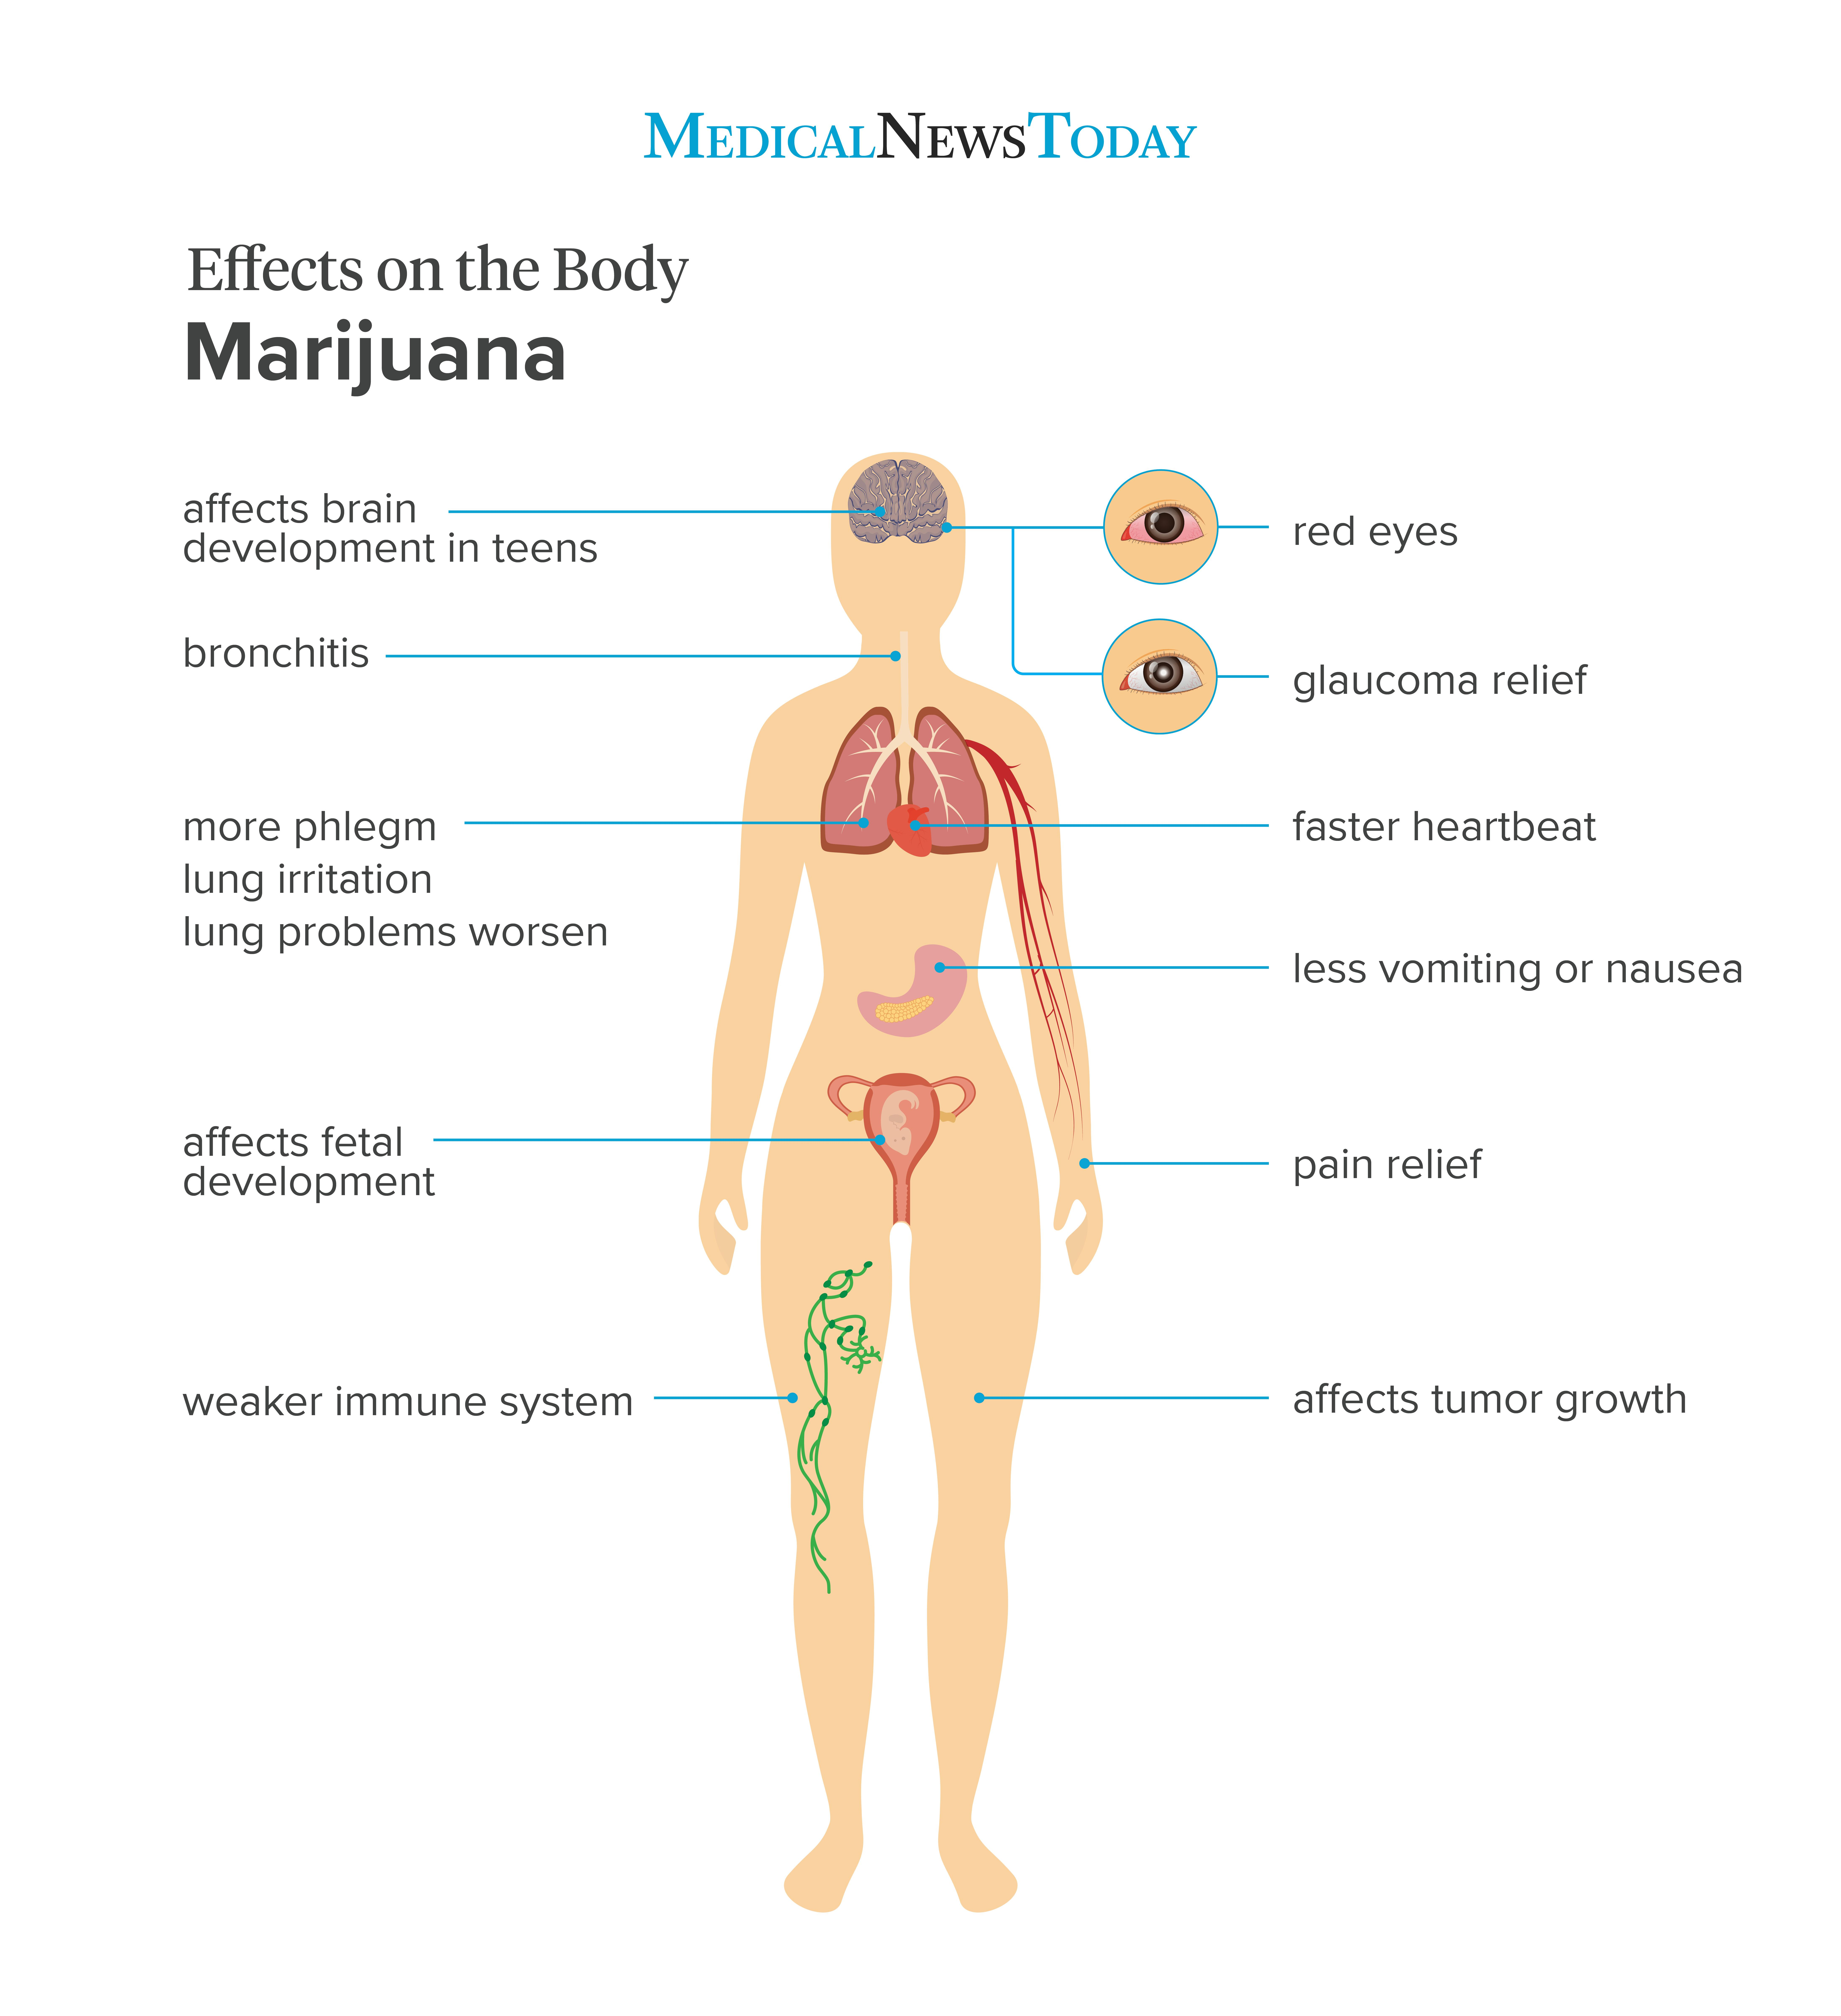 infographic showing the effects of marijuana on the body